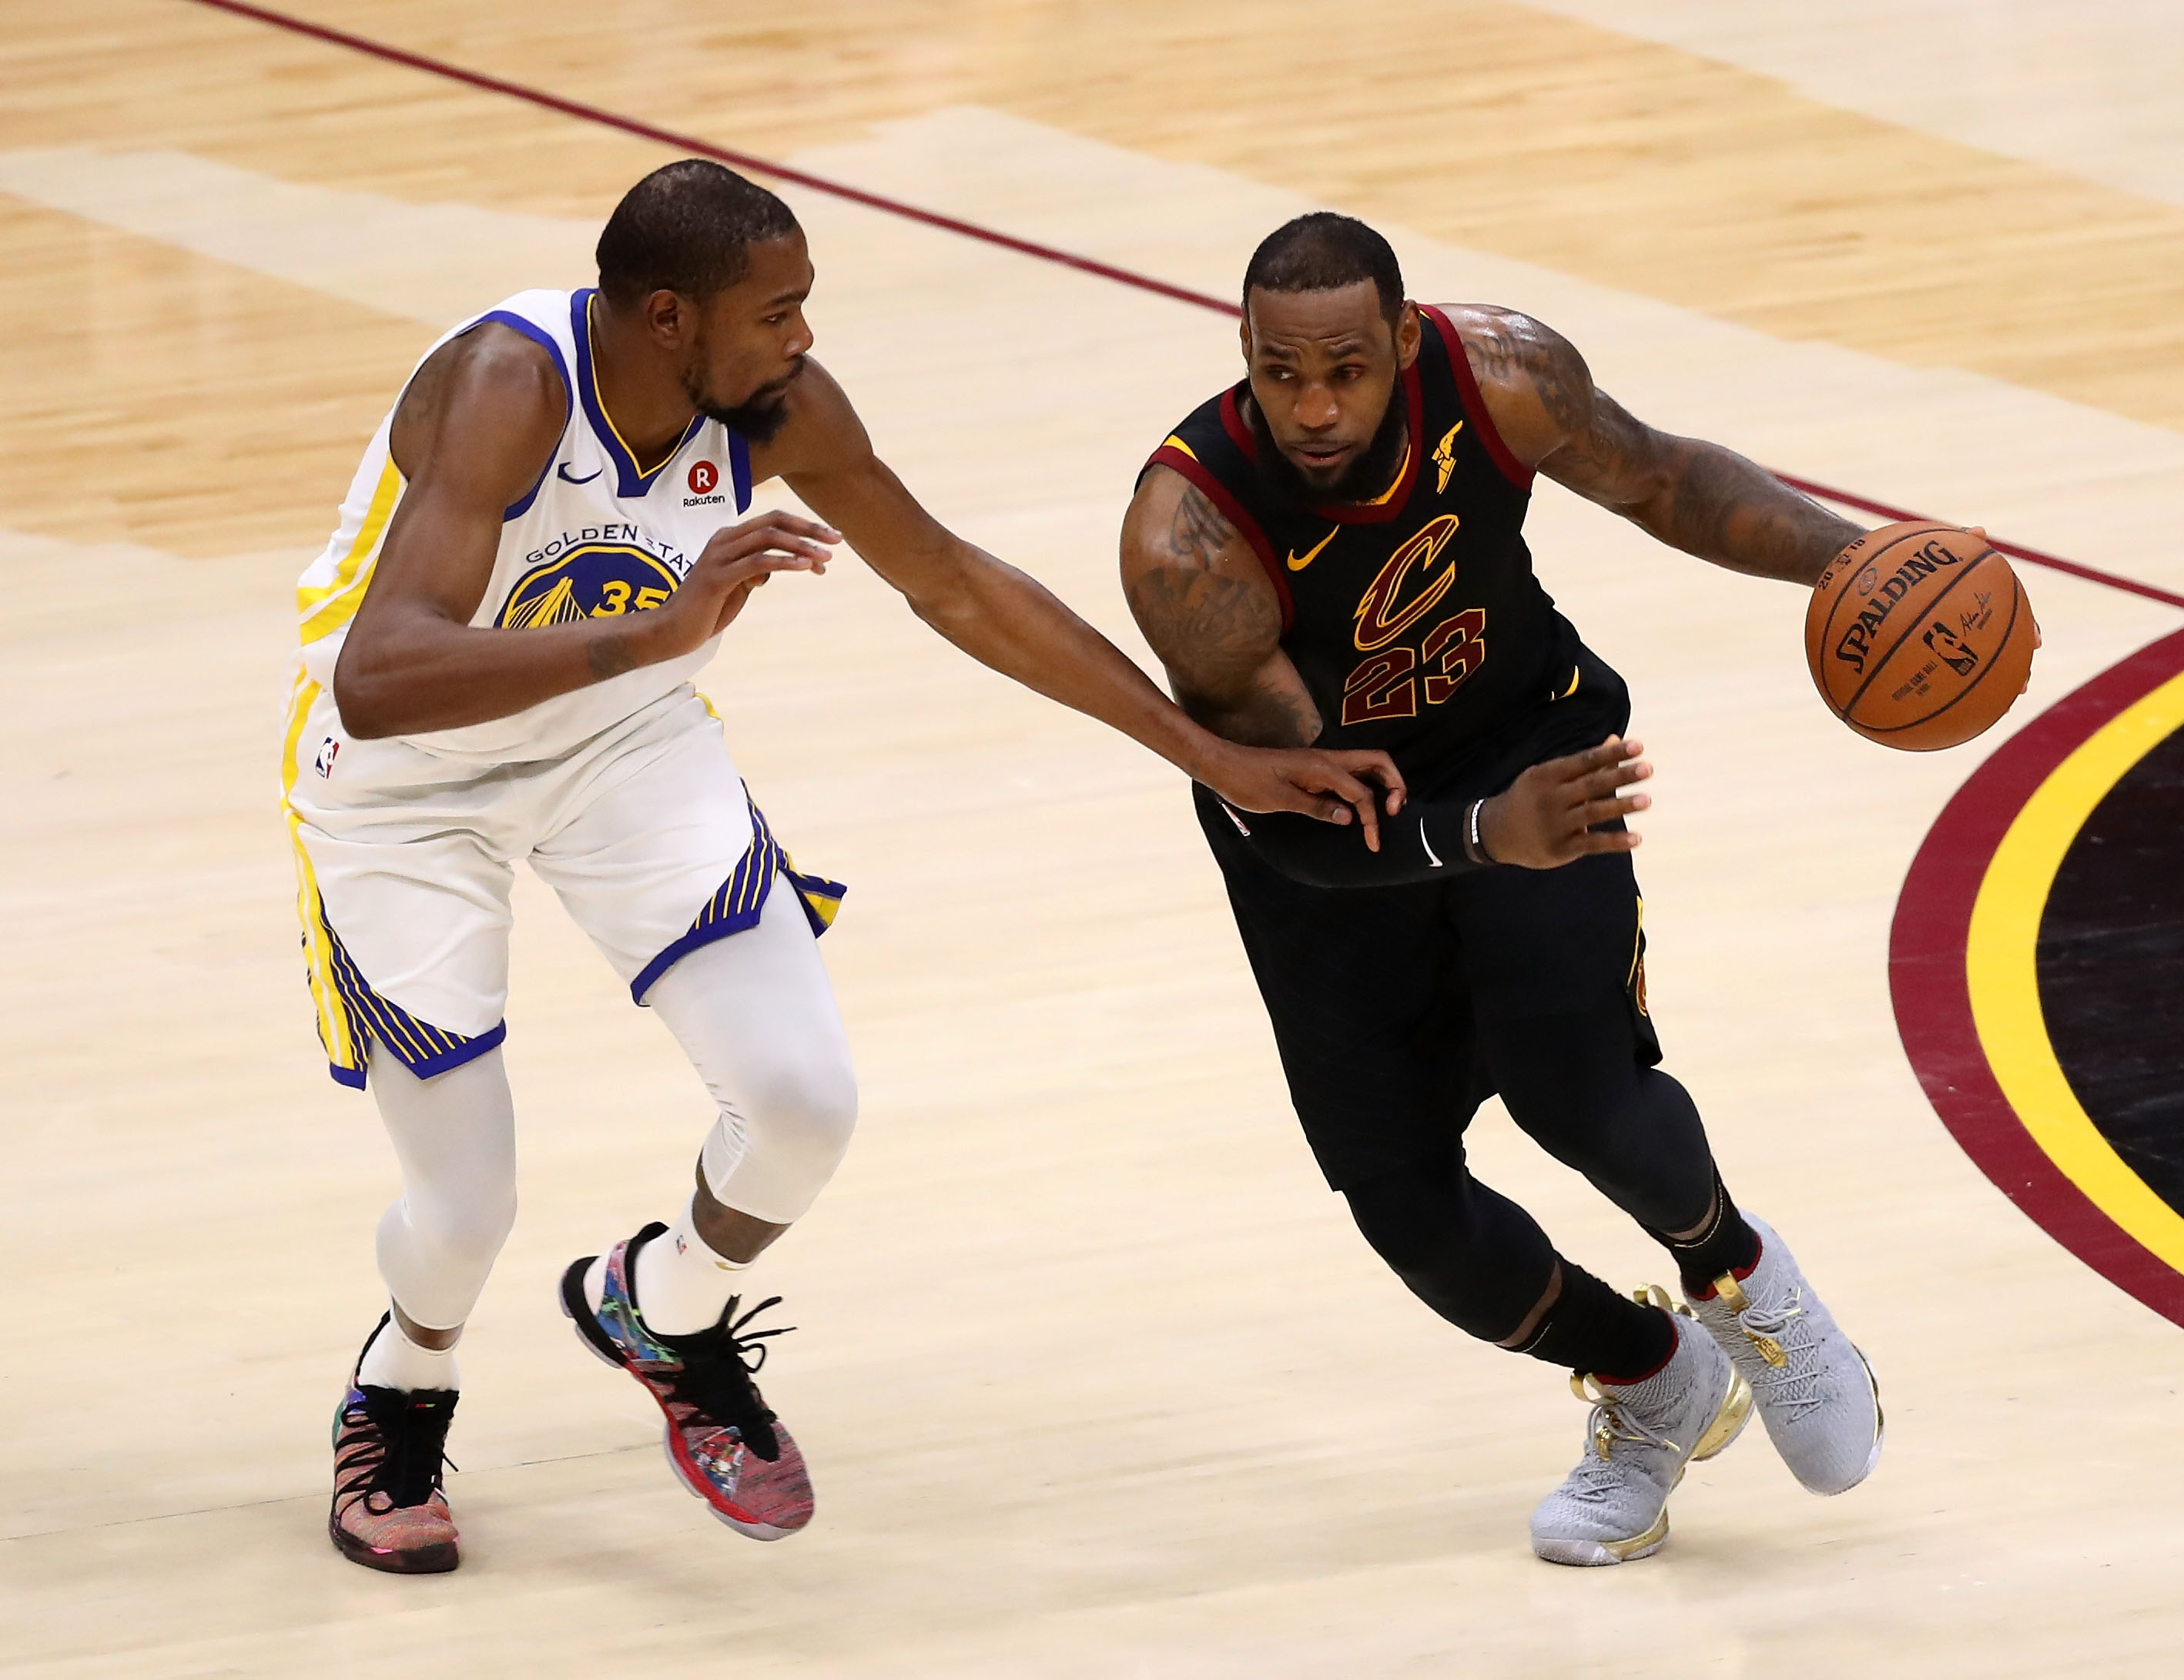 LeBron James should be crowned 2017-18 NBA Finals MVP